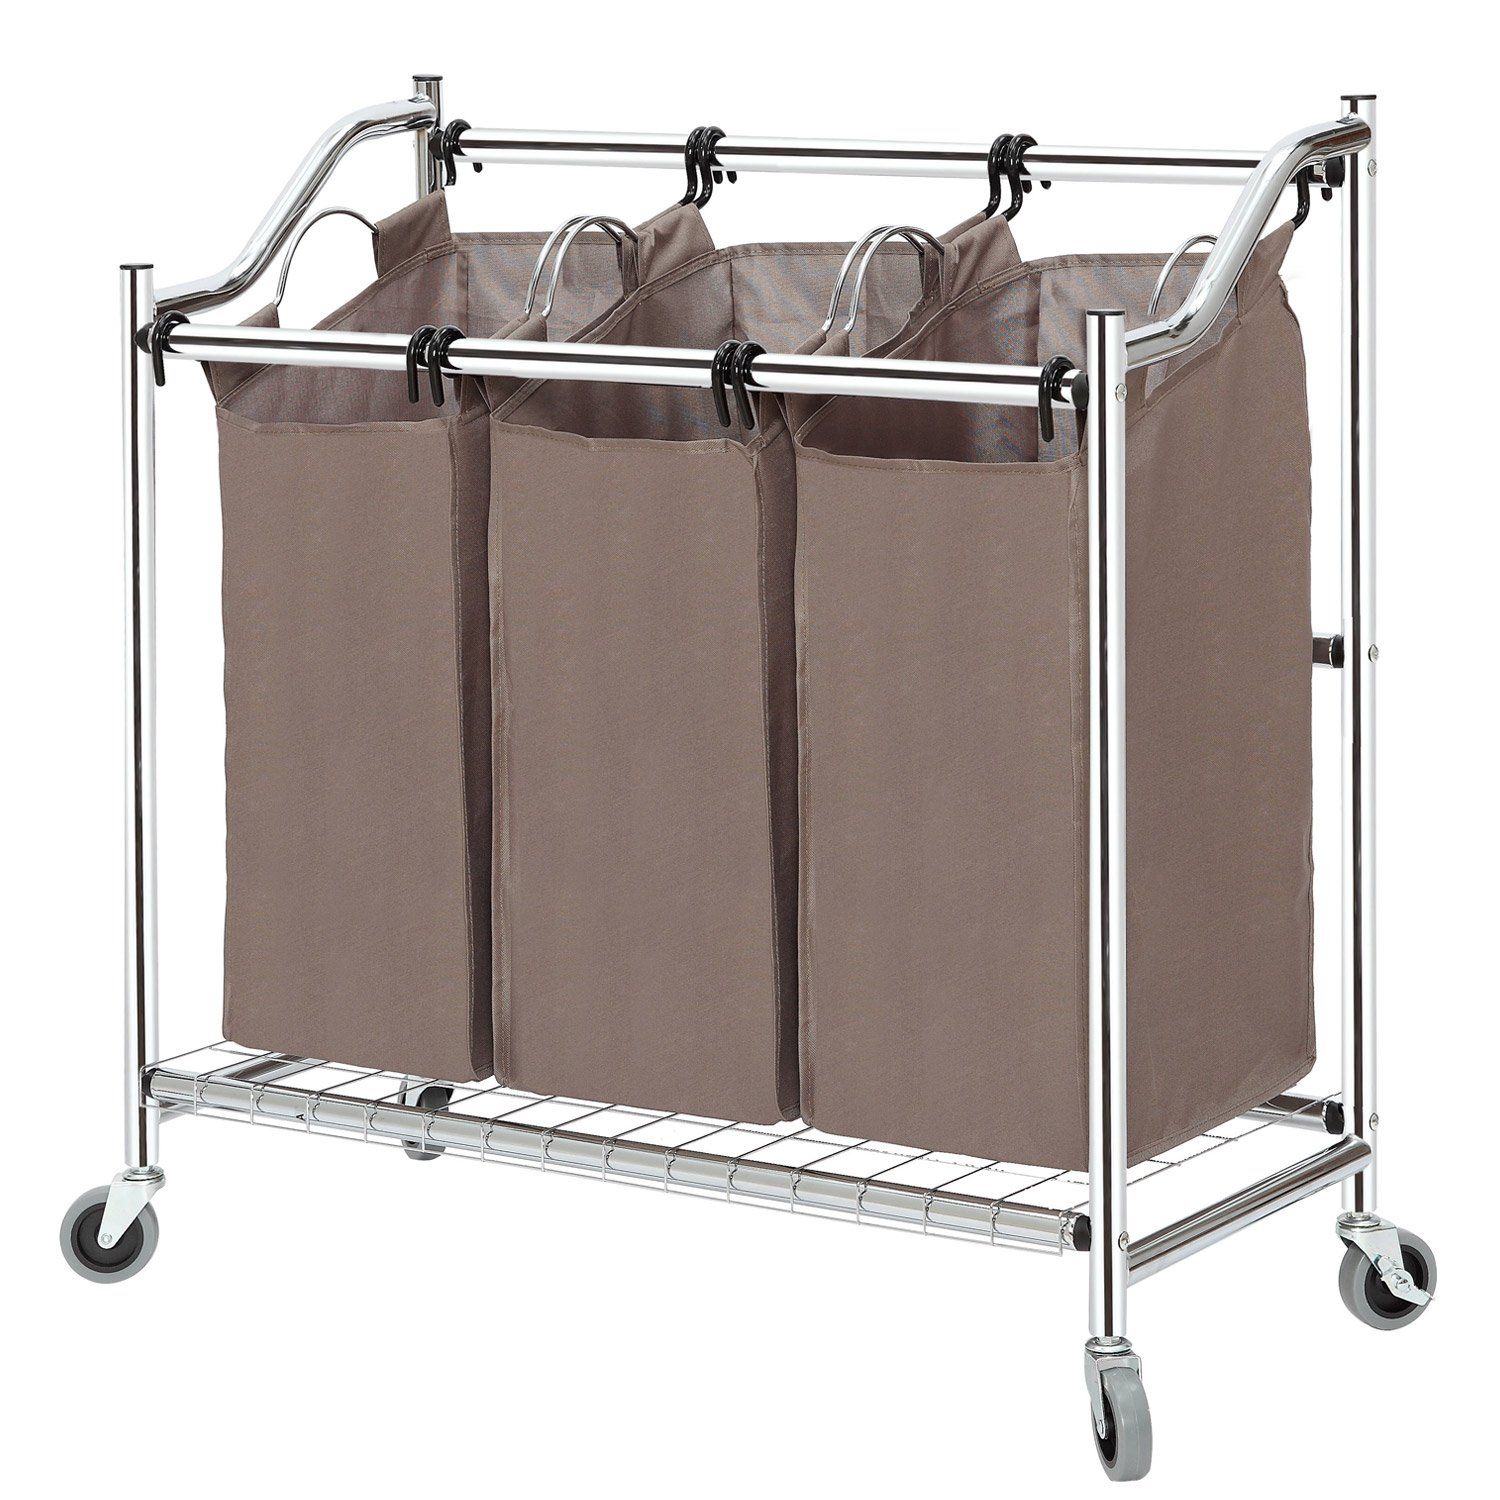 STORAGE MANIAC 3-Section Heavy Duty Laundry Hamper Sorter, Superior Steel Rolling Laundry Cart with Removable Bags, Chrome Storagemaniac Storageideas IB-1005000001